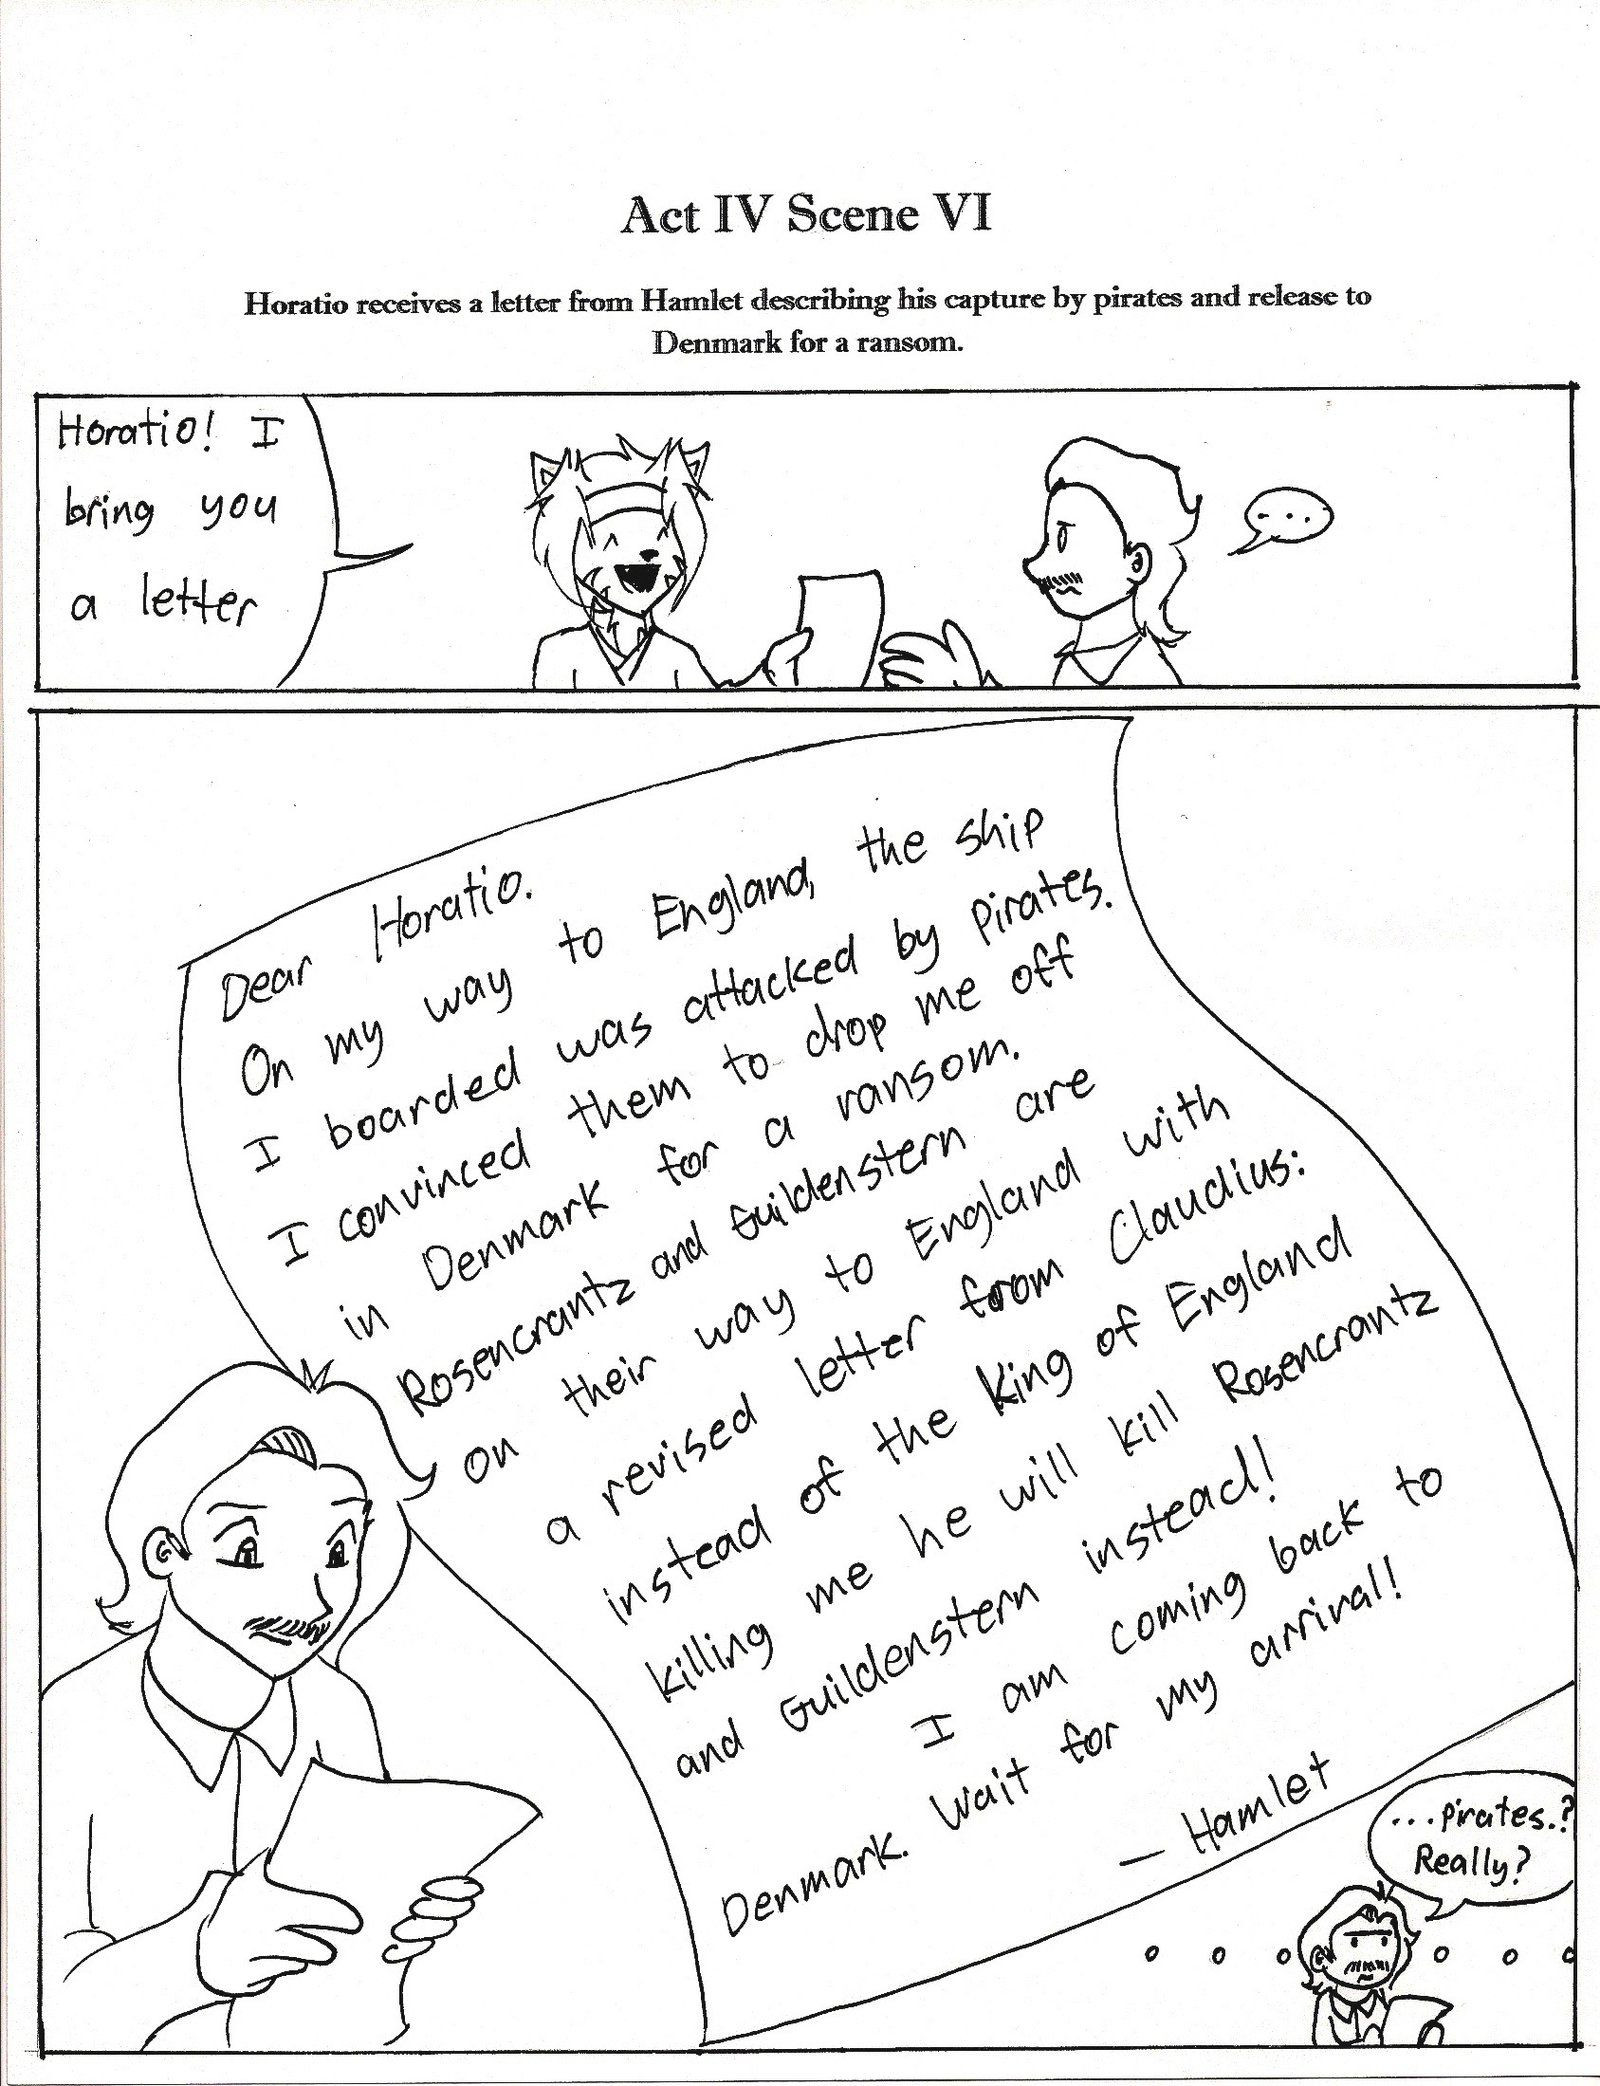 Alliteration Worksheets 4th Grade Act Scene Horatio is Given Letter Written by Hamlet From